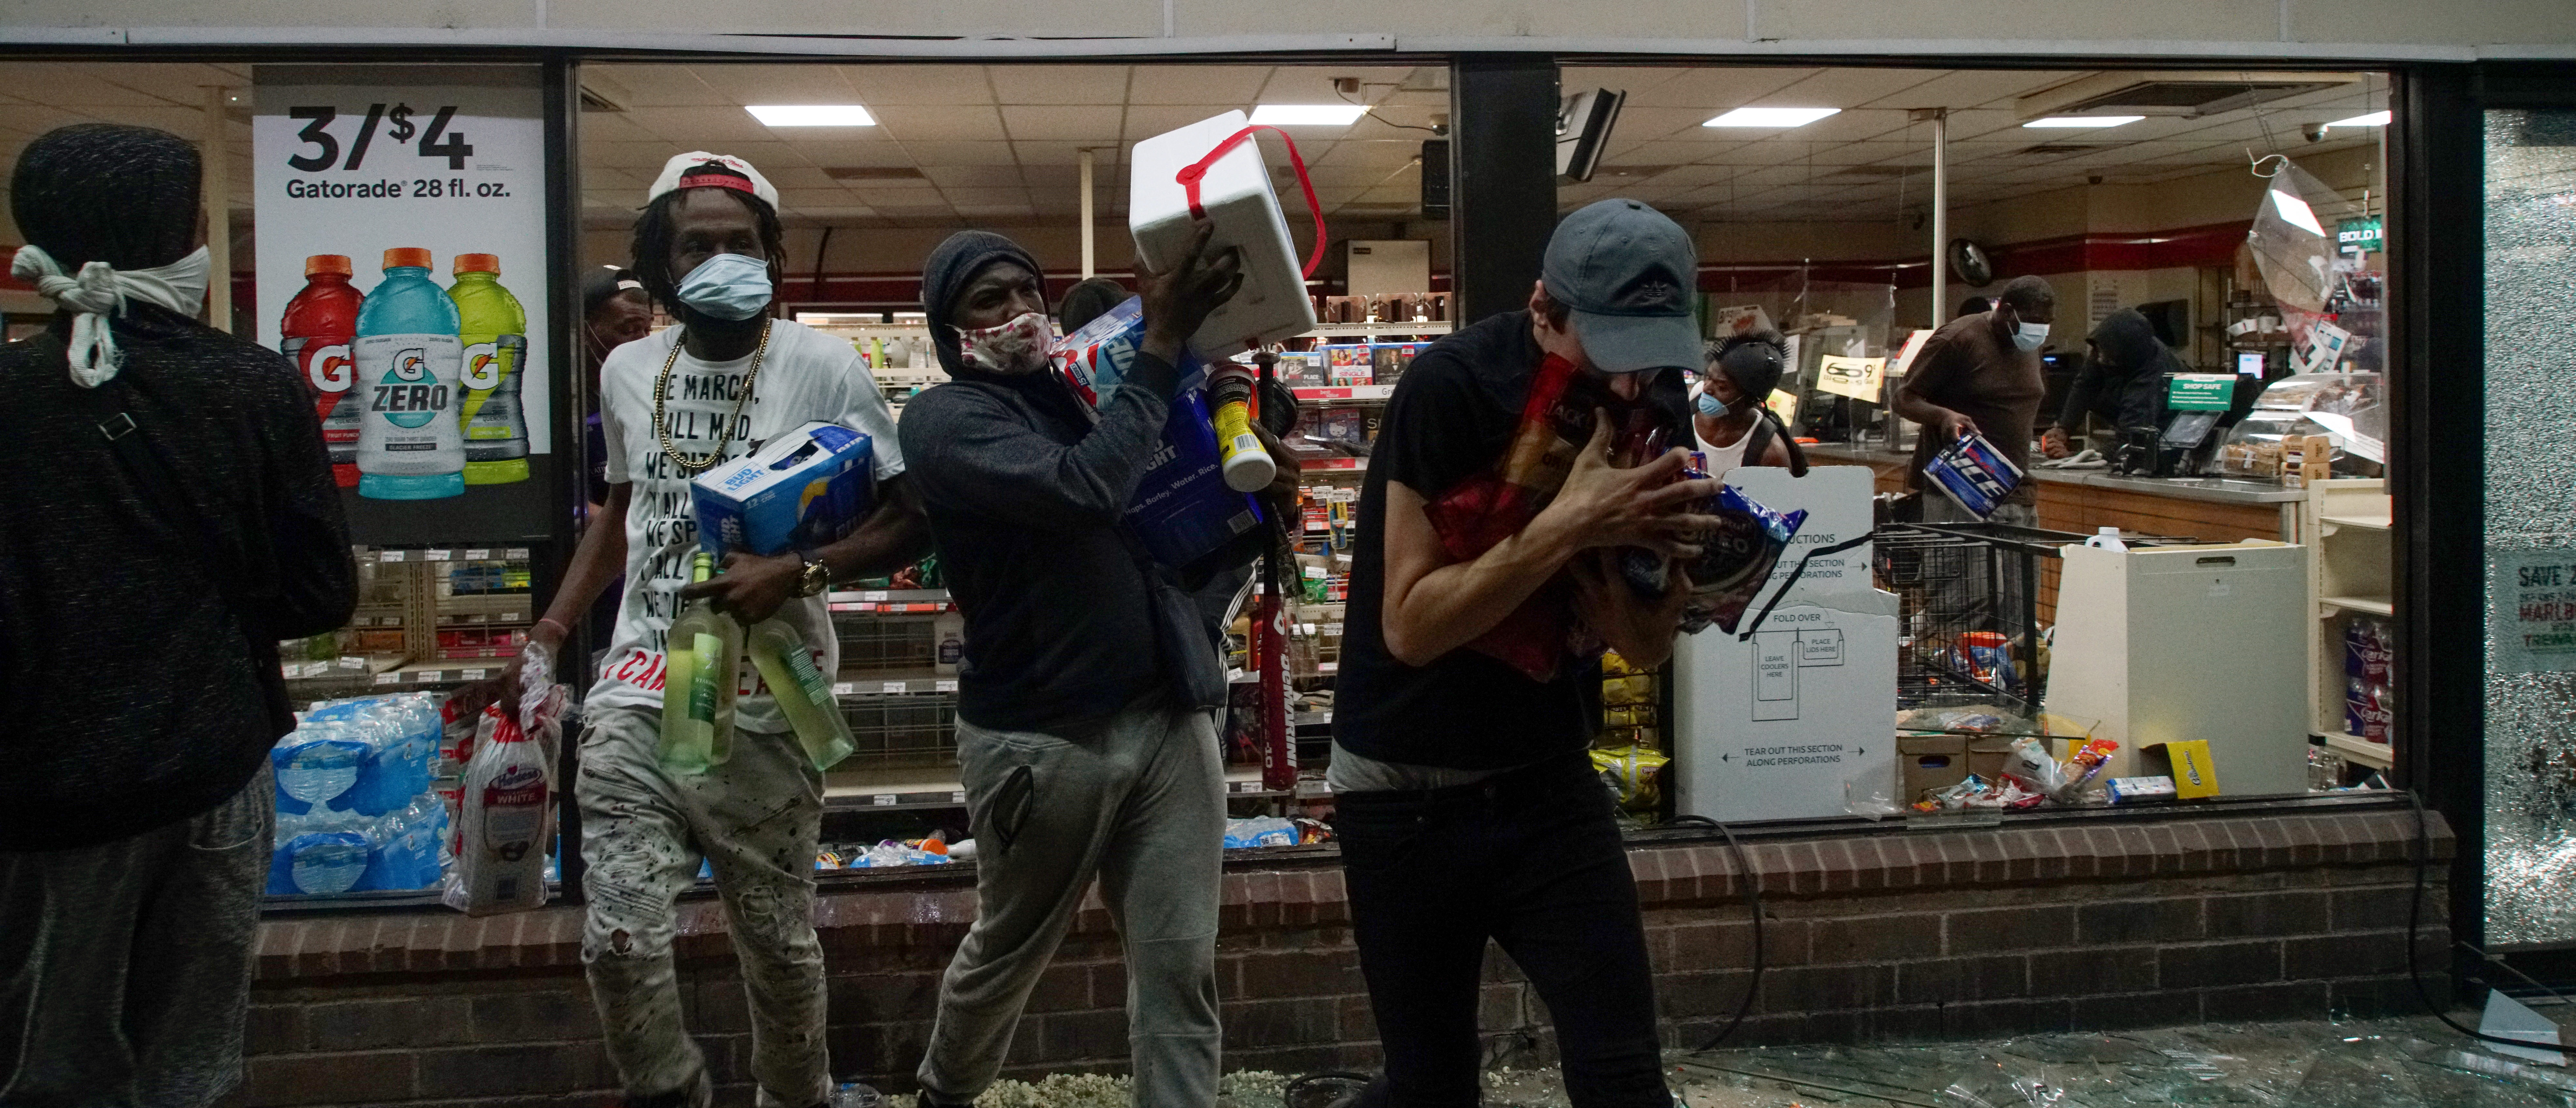 Looters come out a broken window of a 7-11 during a protest against the death in Minneapolis police custody of African-American man George Floyd, in St Louis, Missouri, U.S., June 1, 2020. REUTERS/Lawrence Bryant